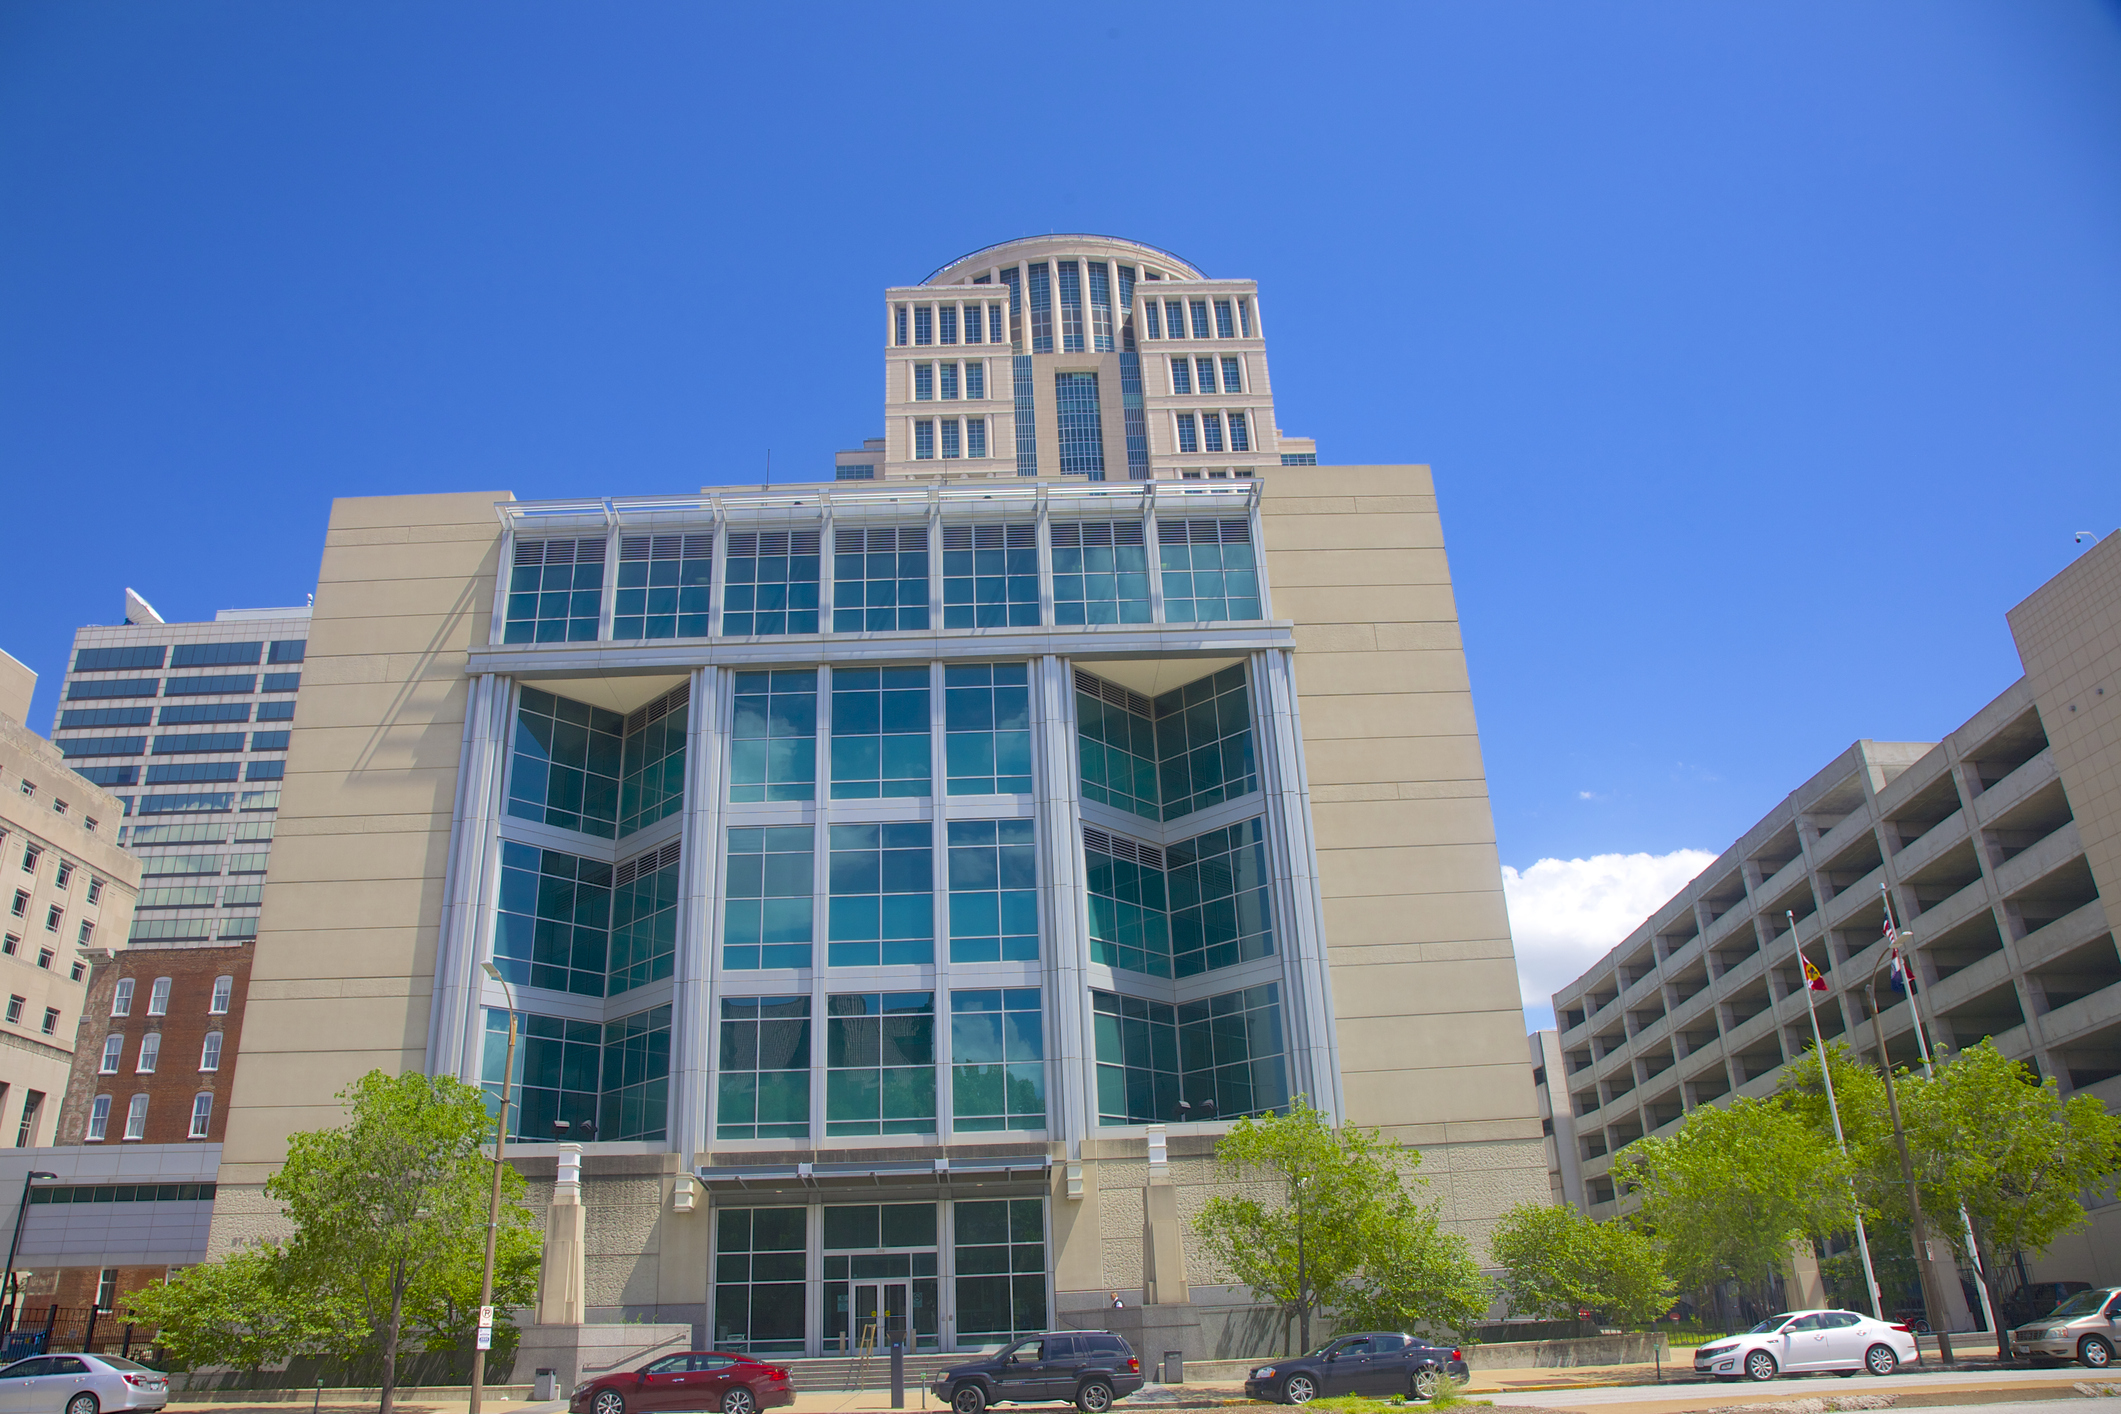 Modern glass-front of City Justice Center, St. Louis